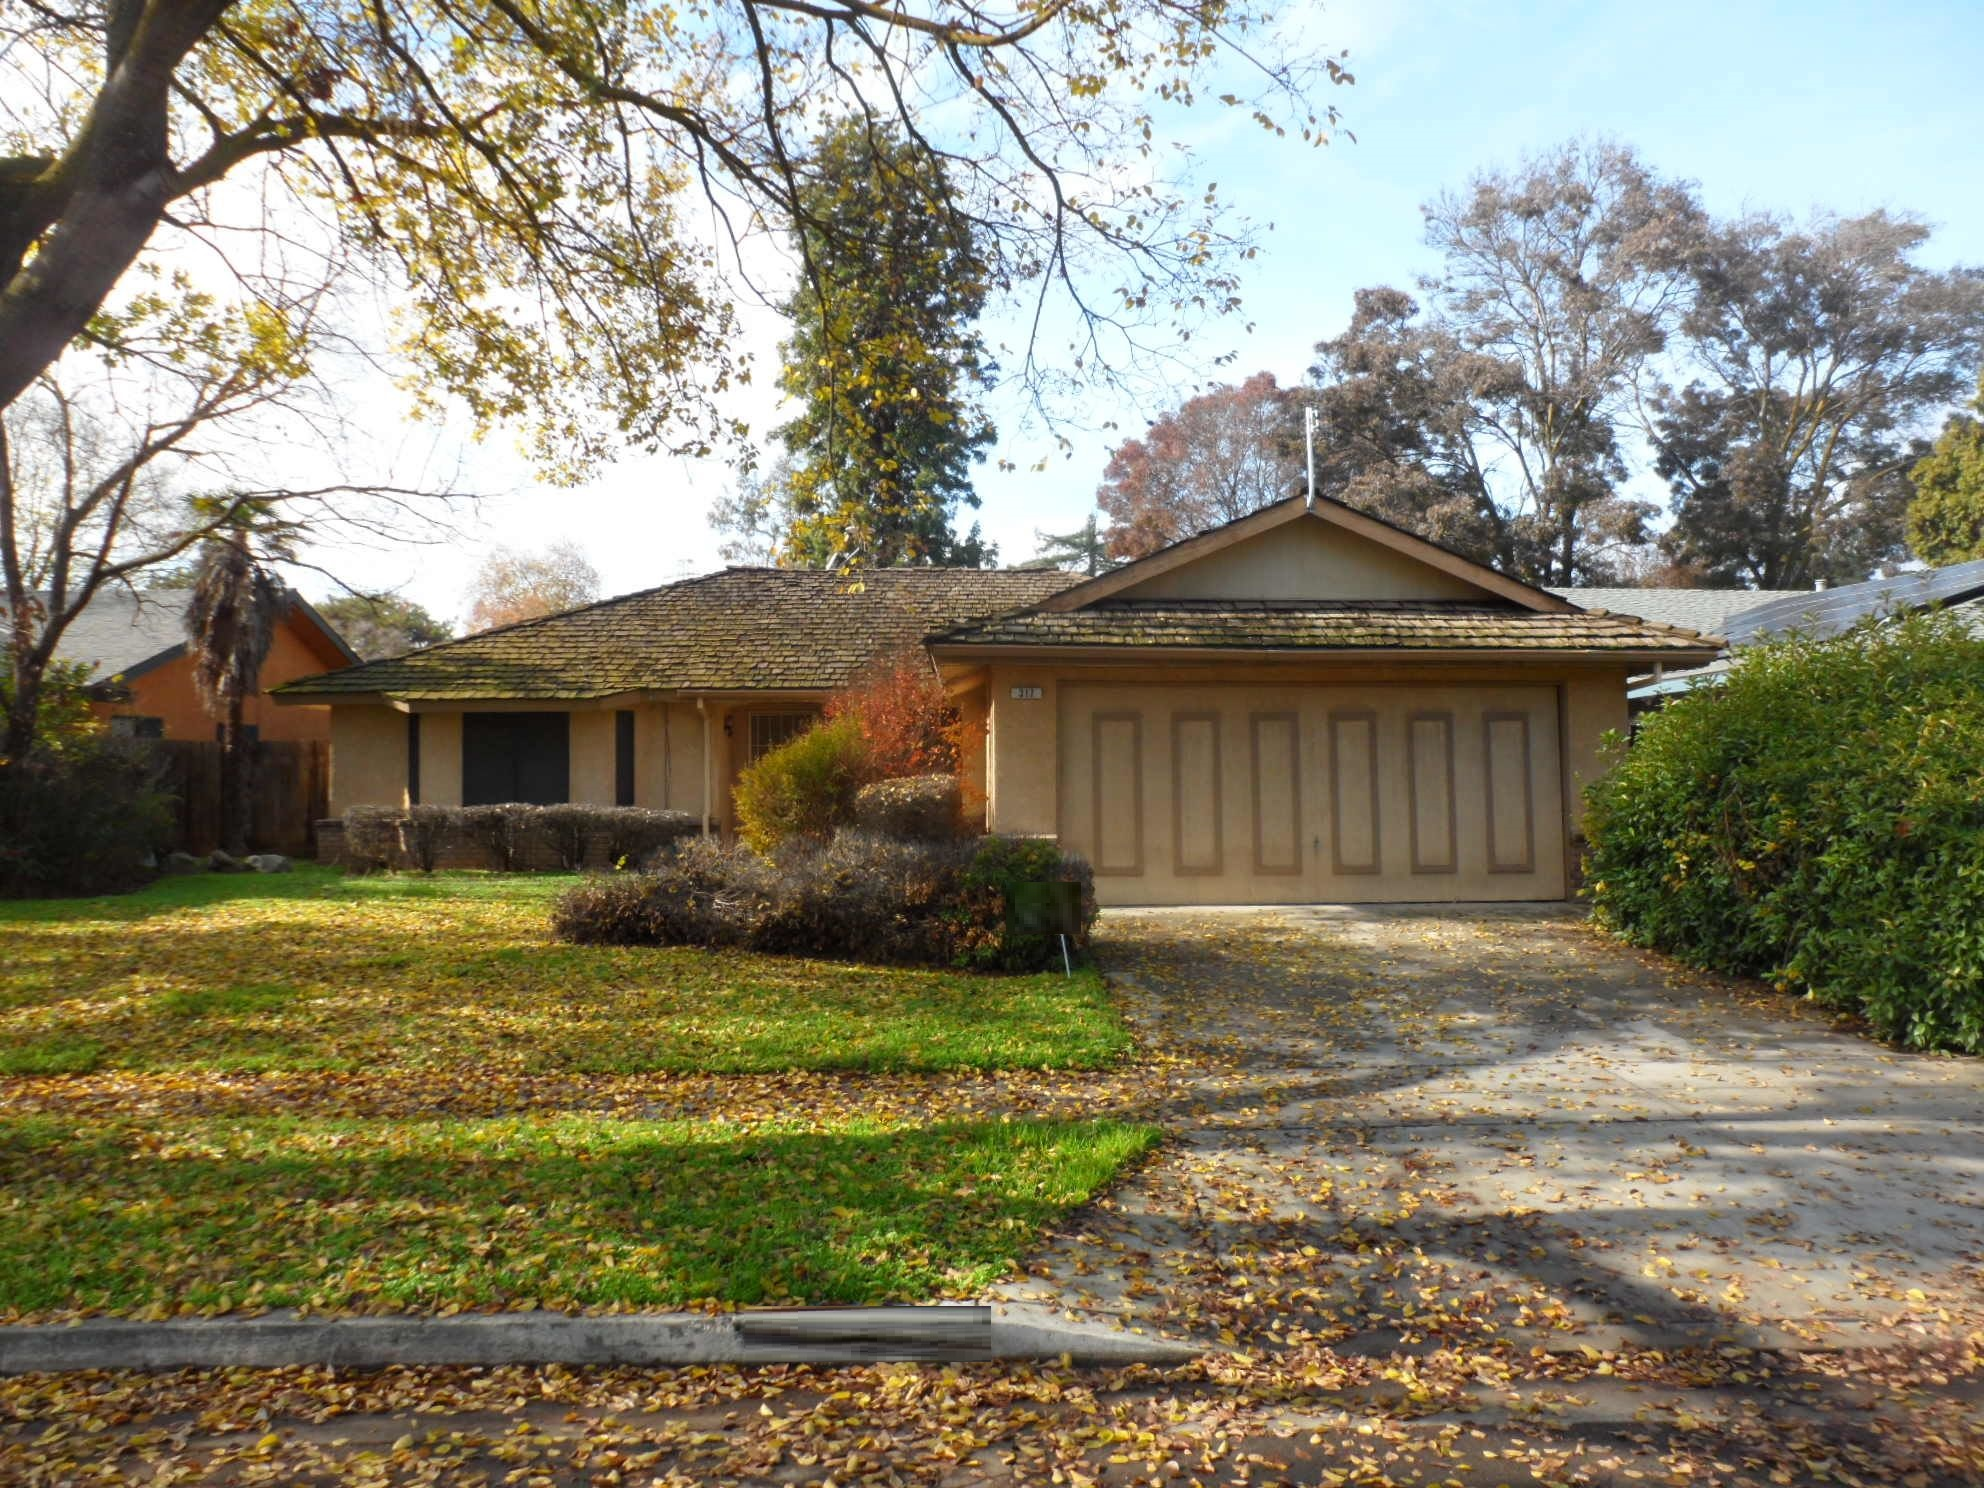 317 N Claremont Ave, Fresno, CA 93727